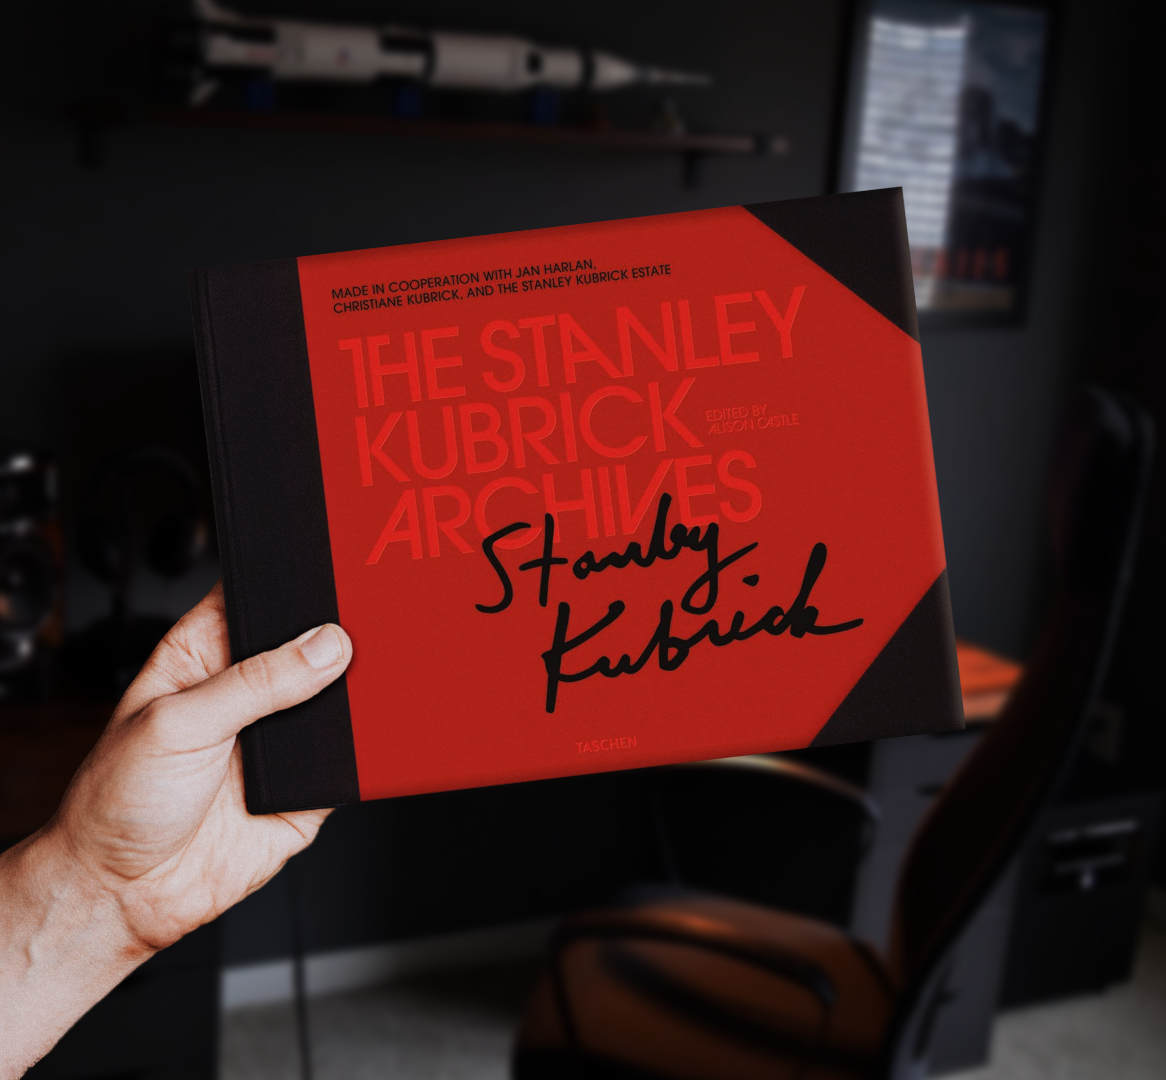 stanley kubrick archives archive book behind the scenes full metal jacket the shining clockwork orange 2001 a space odyssey eyes wide shut